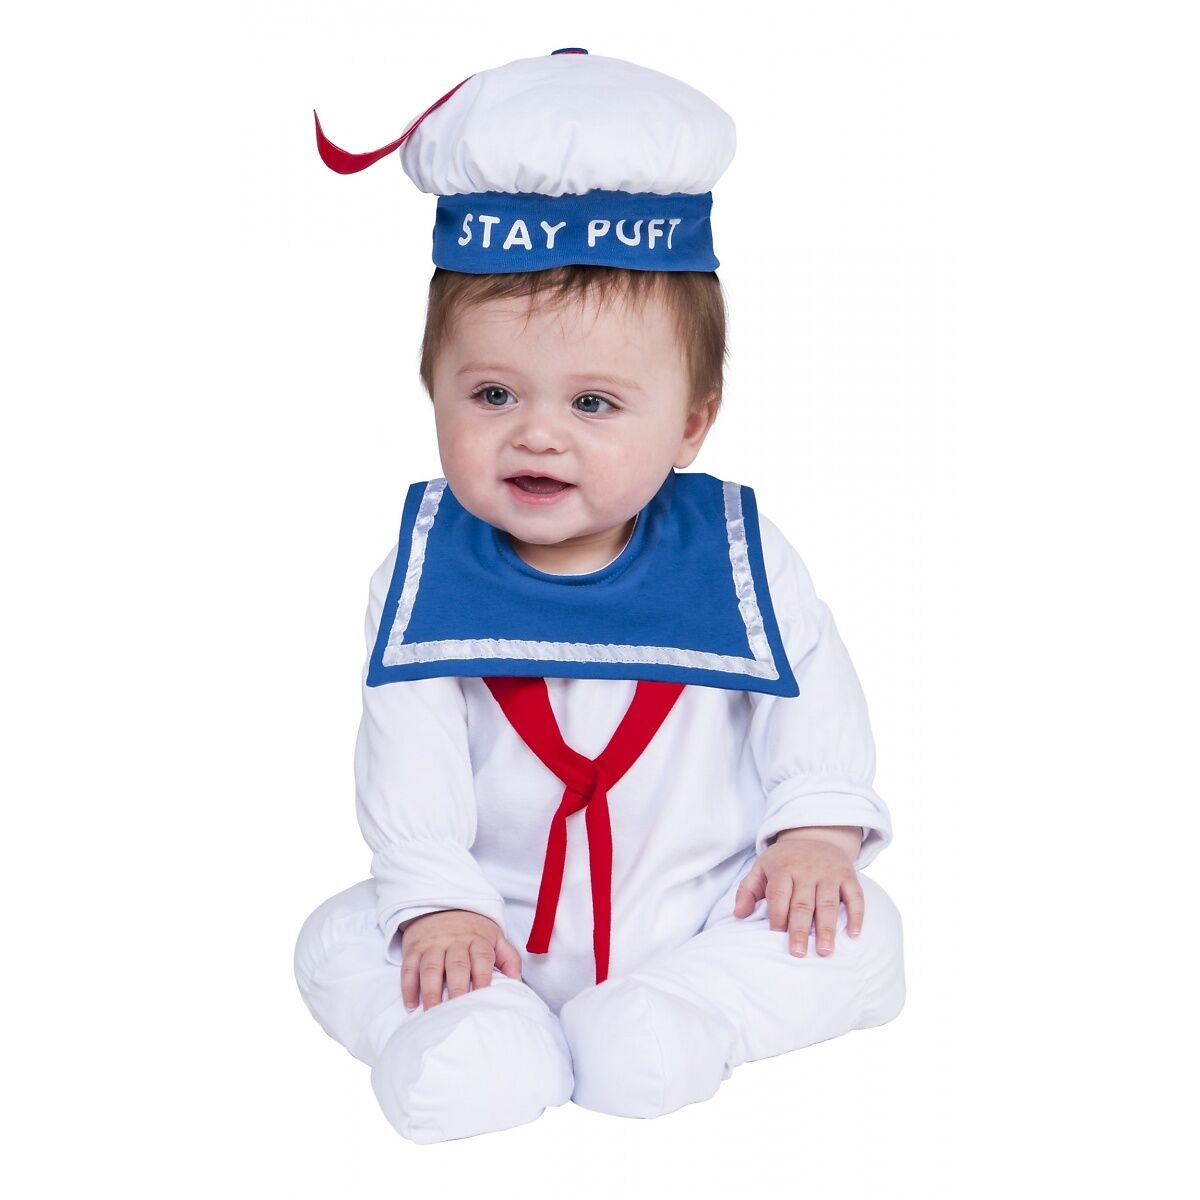 Ghostbusters Stay Puft Marshmallow Man Costume Halloween Fancy Dress